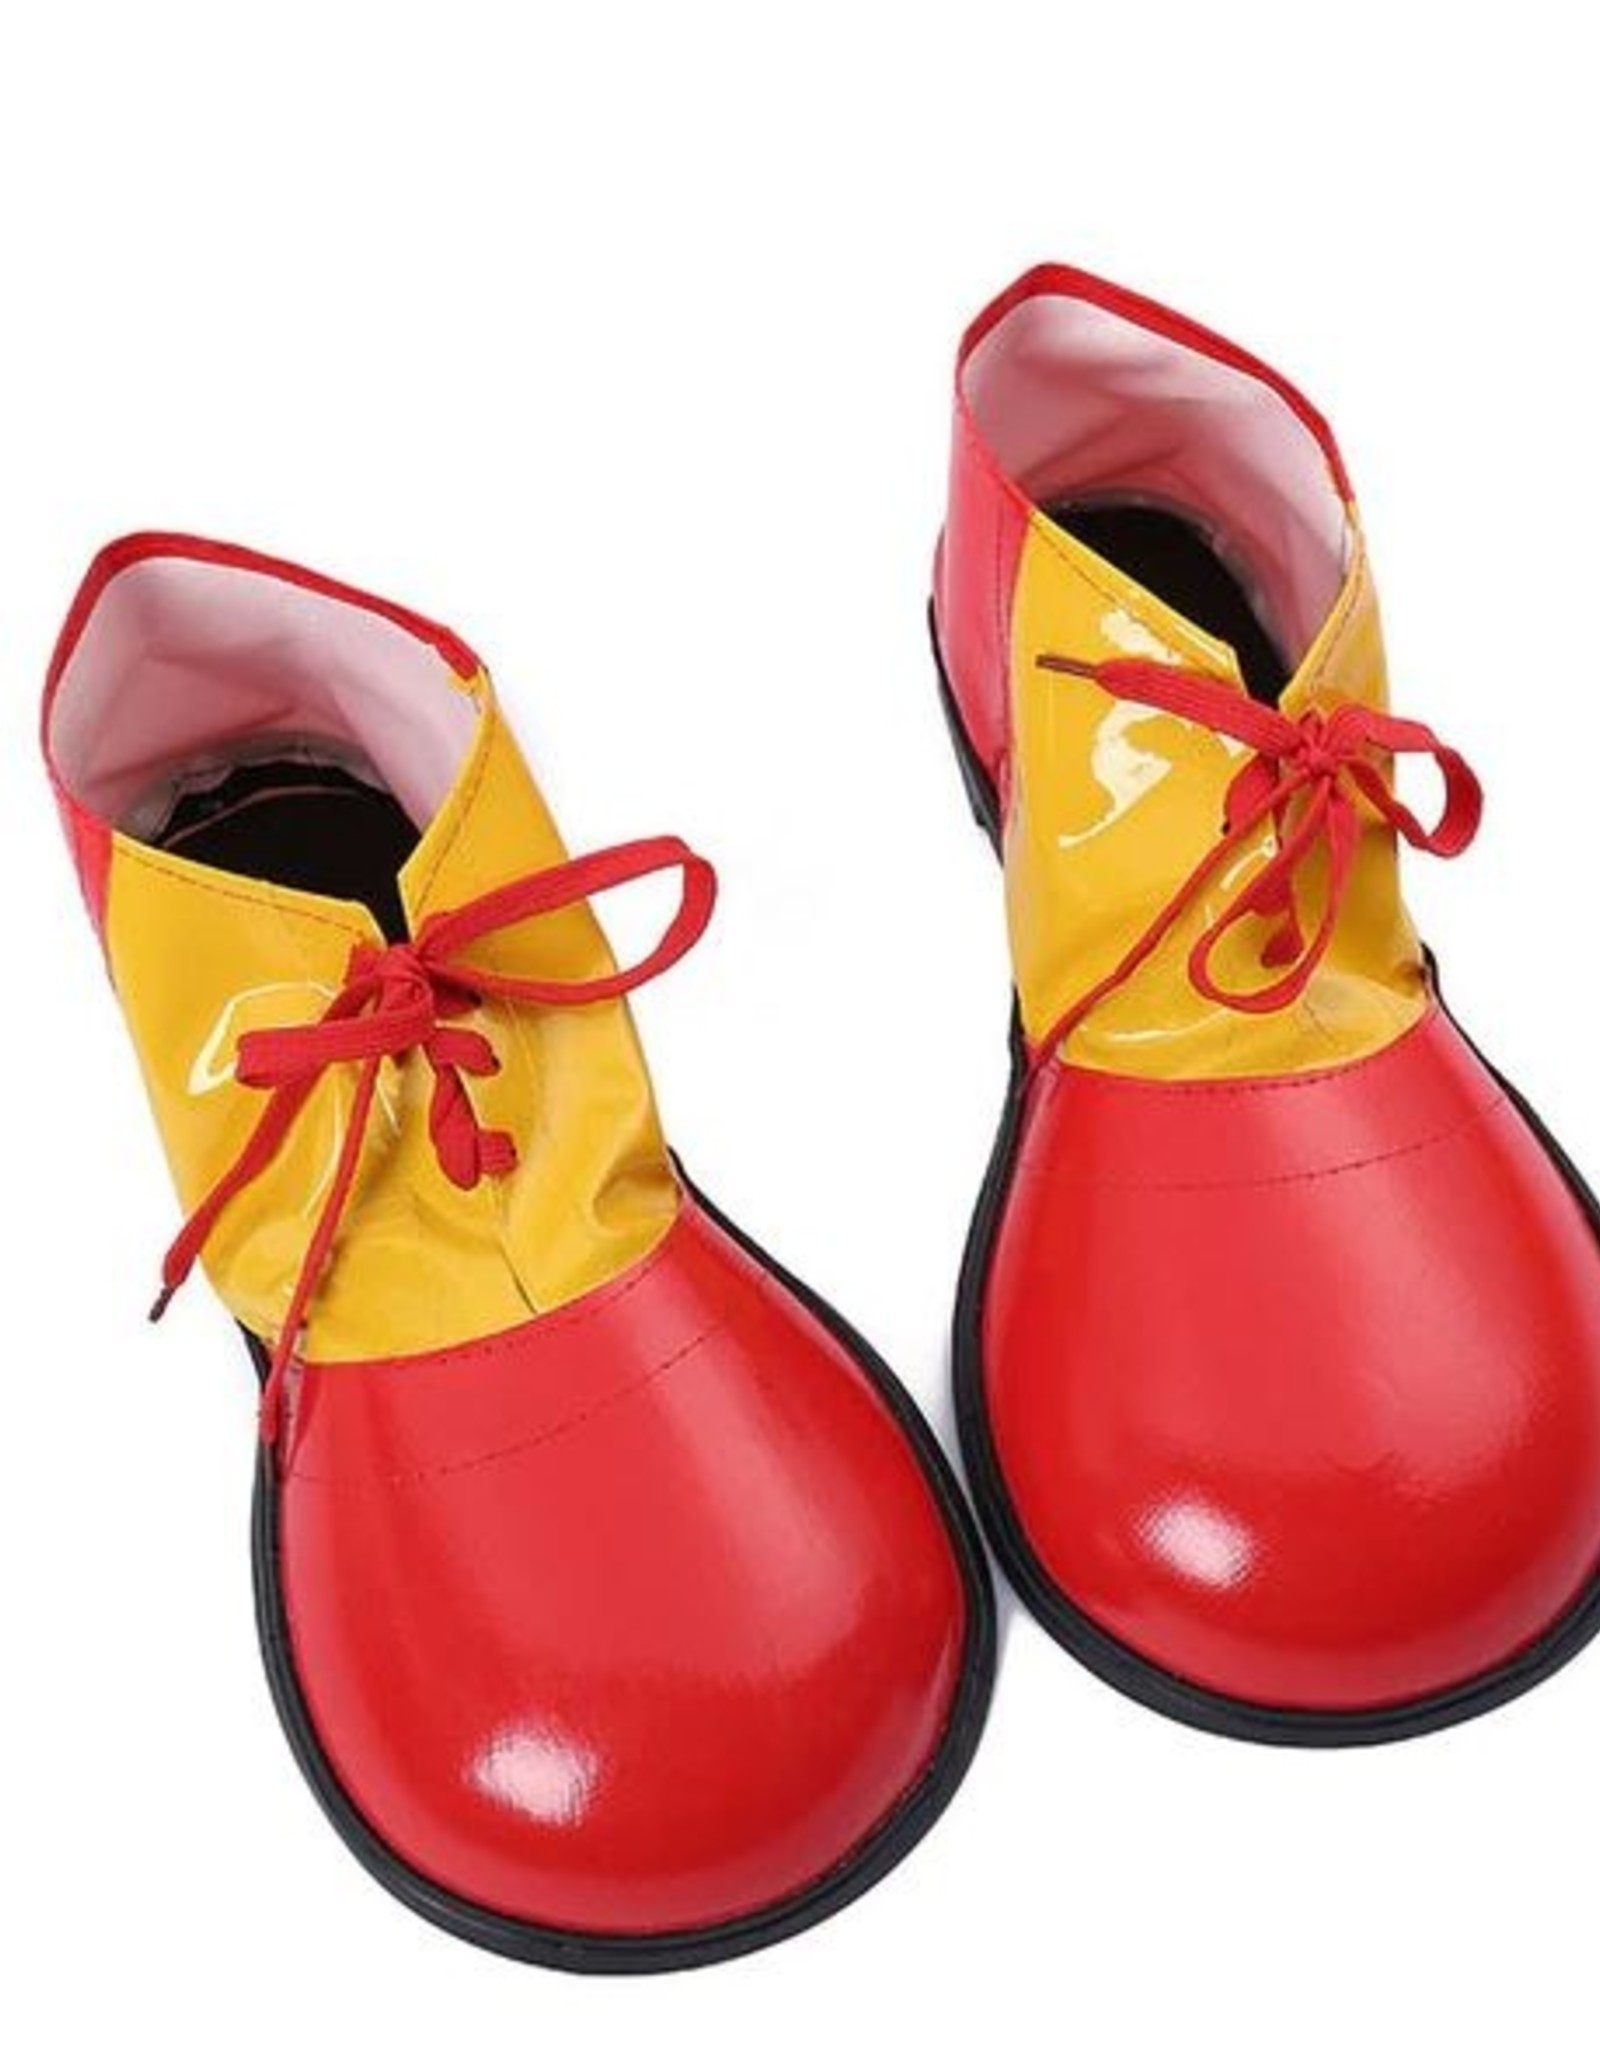 Clown Shoes Adult Red and Yellow